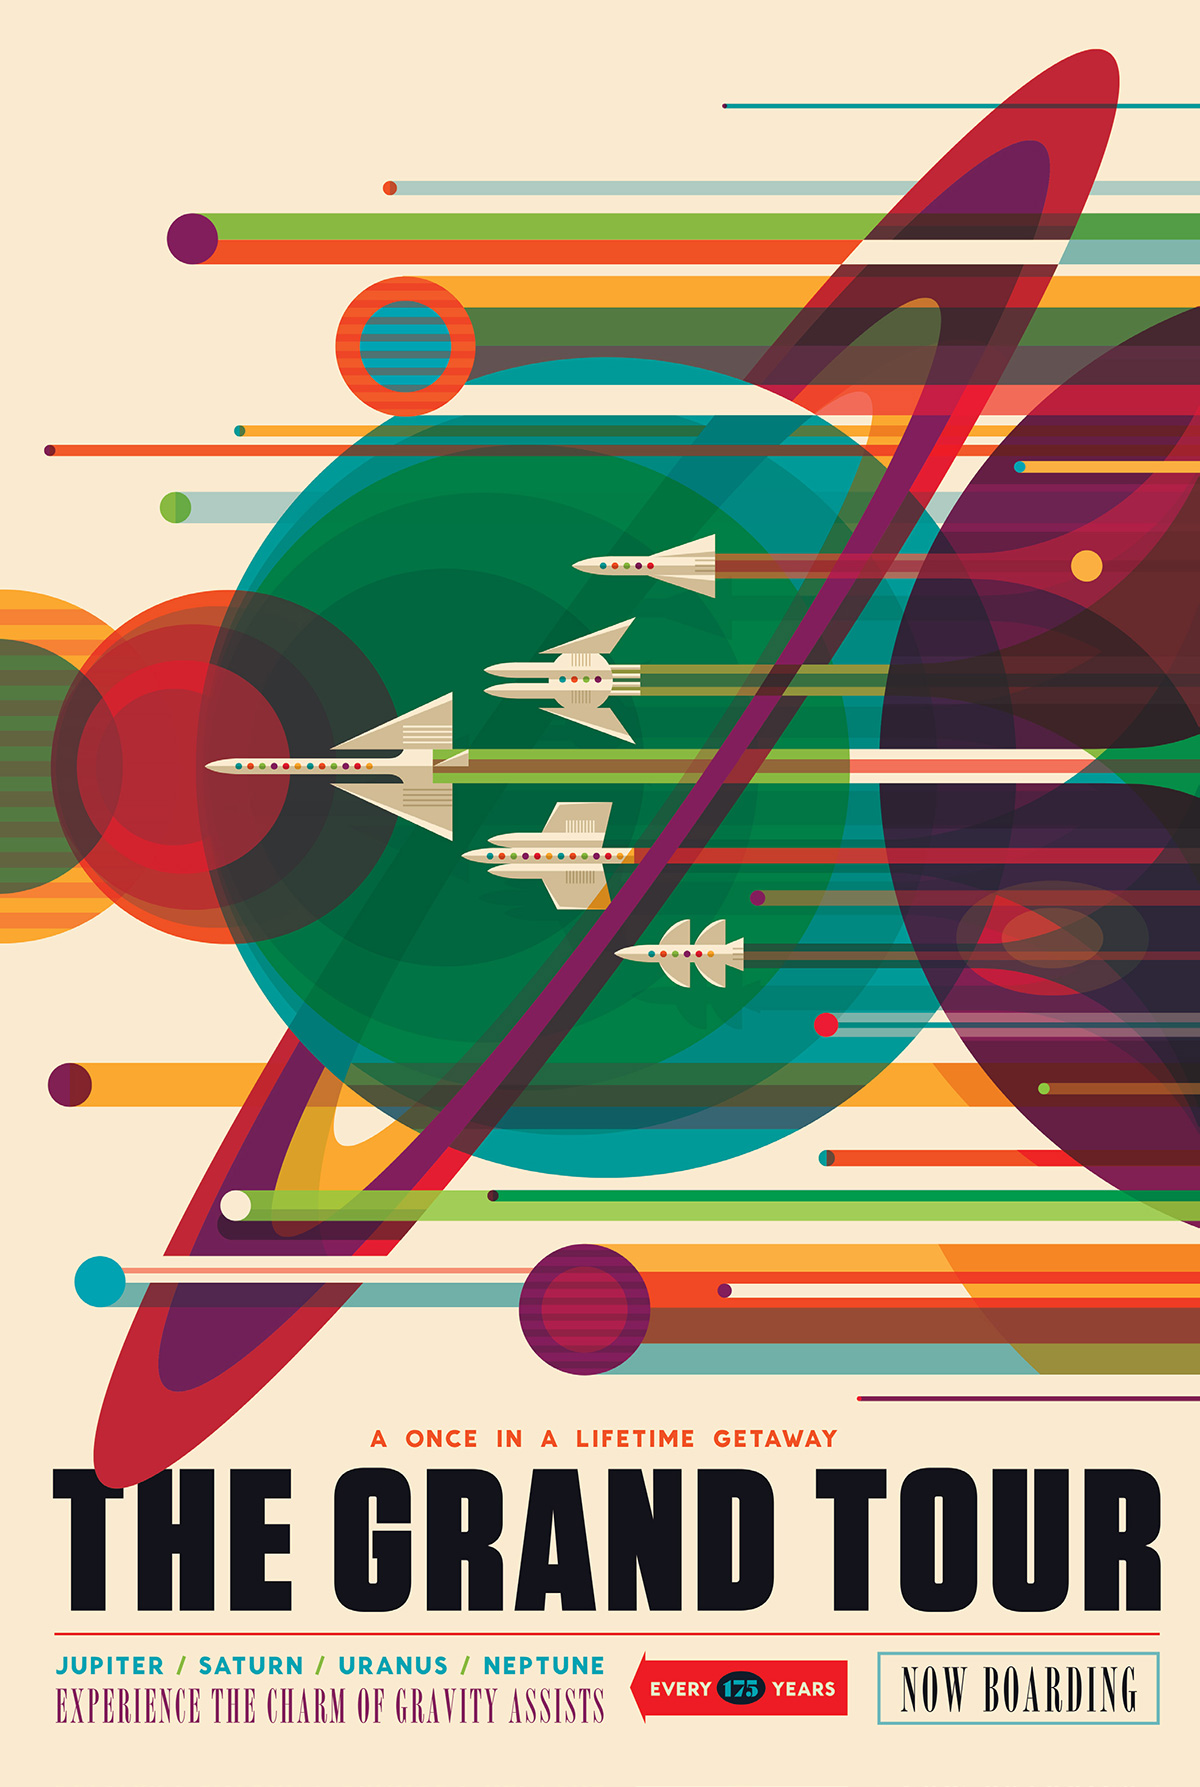 Poster design software for windows 8 1 - Fan Worknasa Has Released A Bunch Of Posters For The 40th Anniversary Of The Voyager Launch This One Is Feels Very Nms